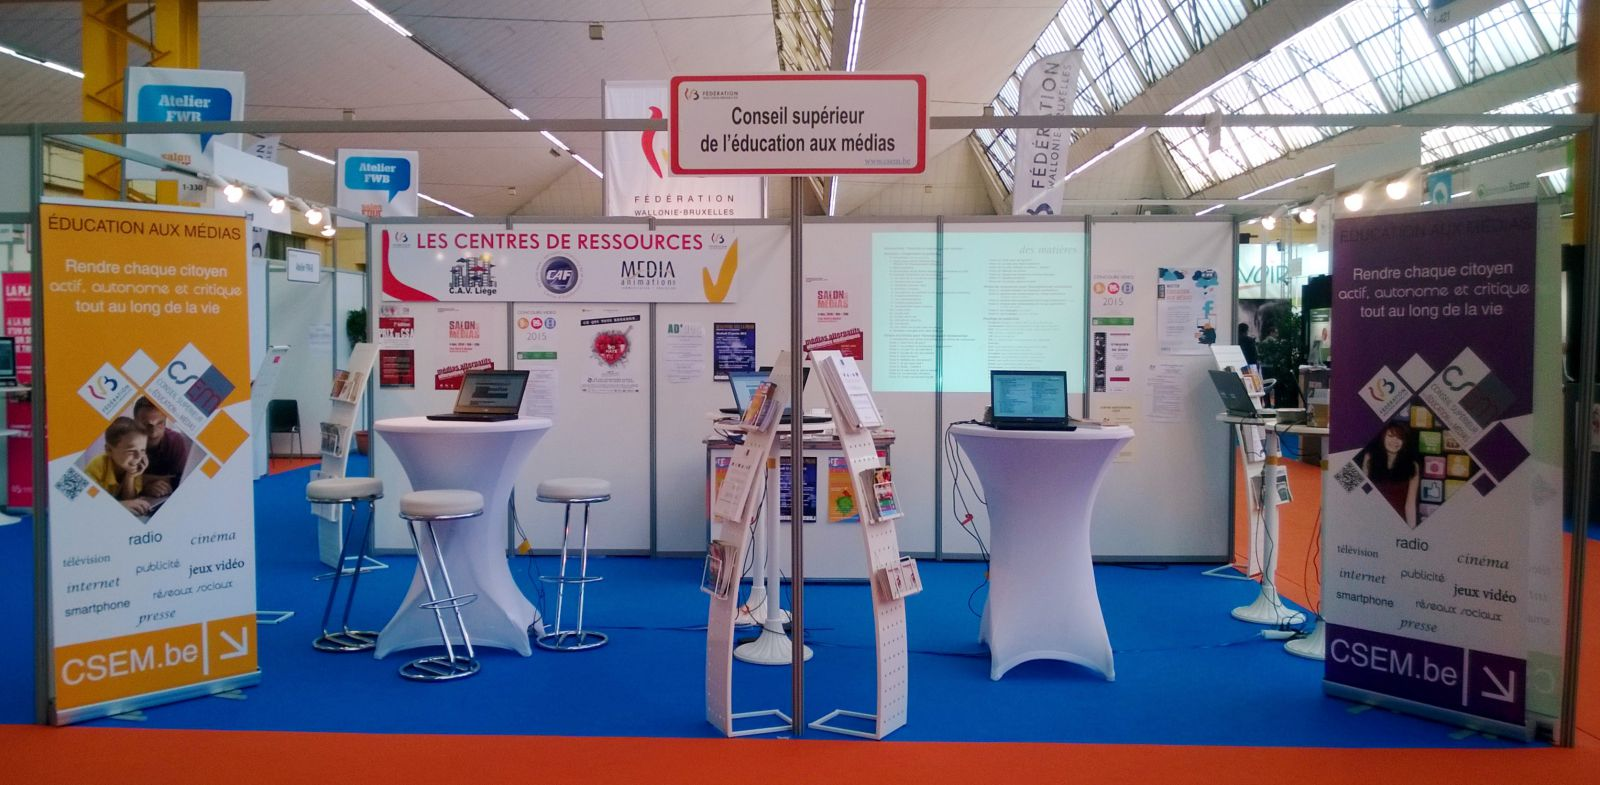 Le stand du CSEM au Salon de l'éducation